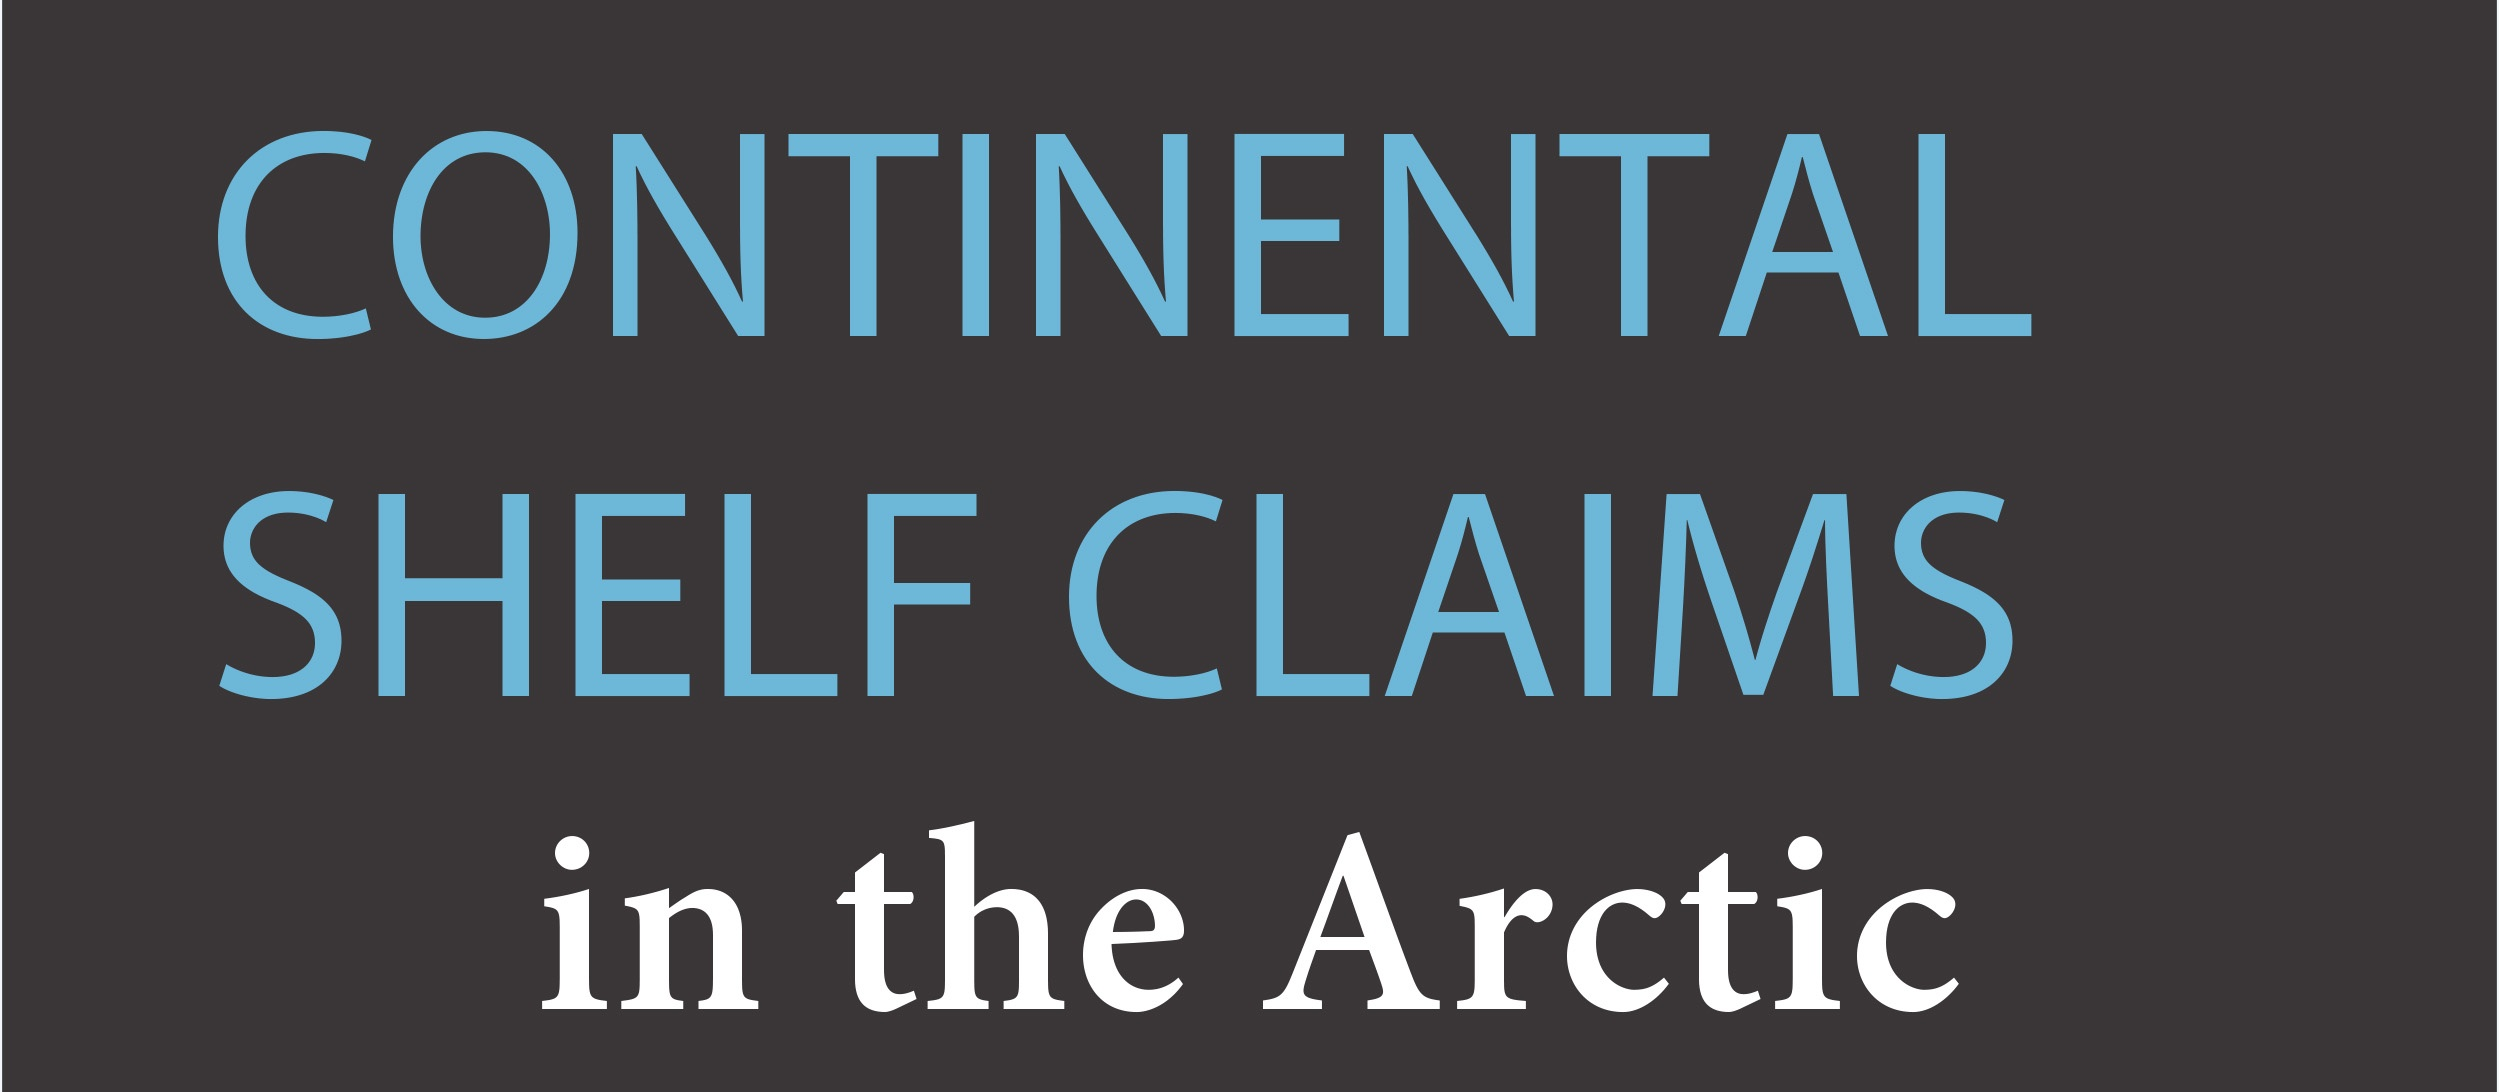 Infographic header on continental shelf claims in the Arctic